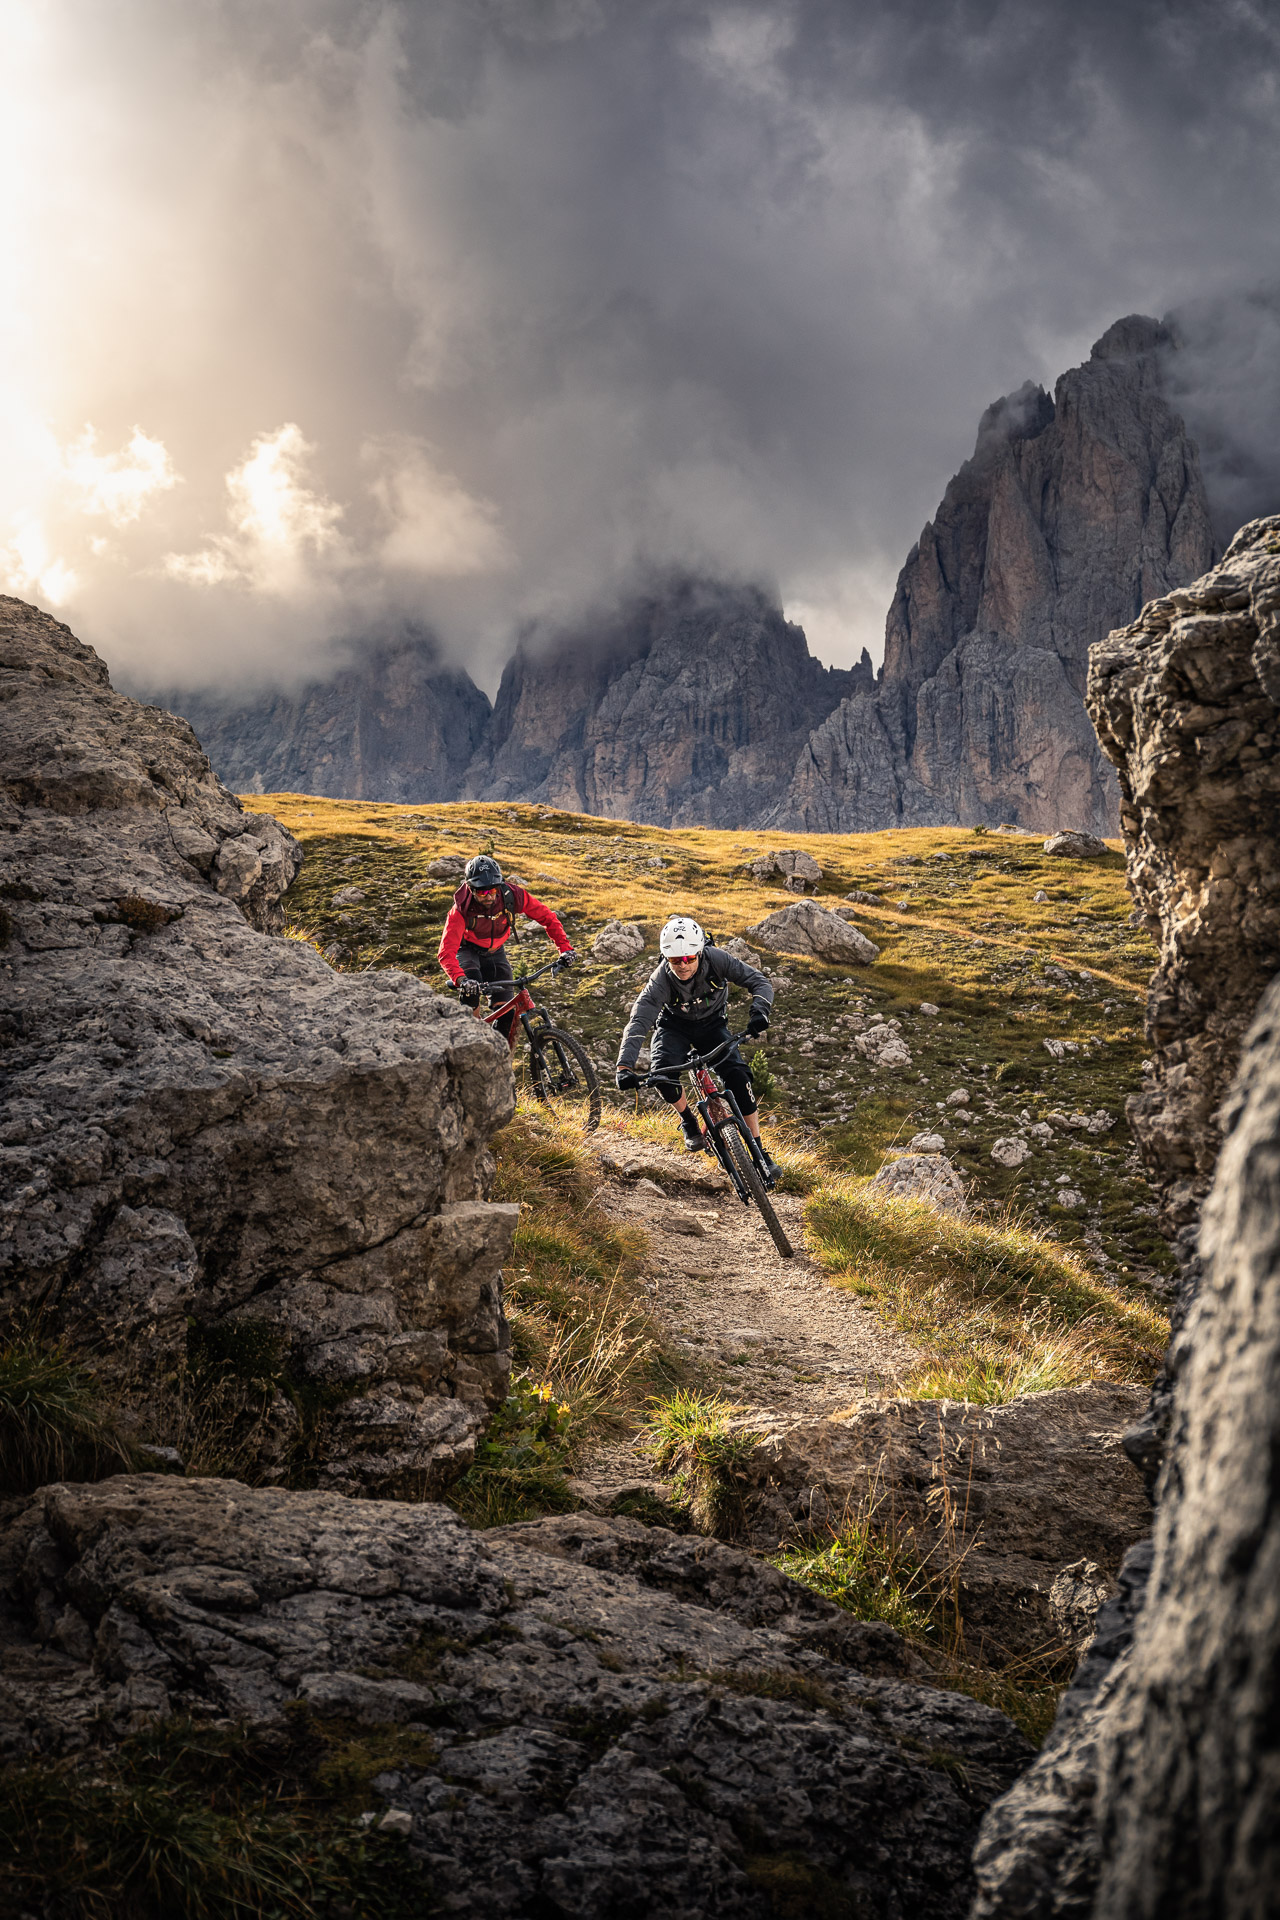 720-Protections-Passo-Sella-Dolomites-2019-_W5A1180